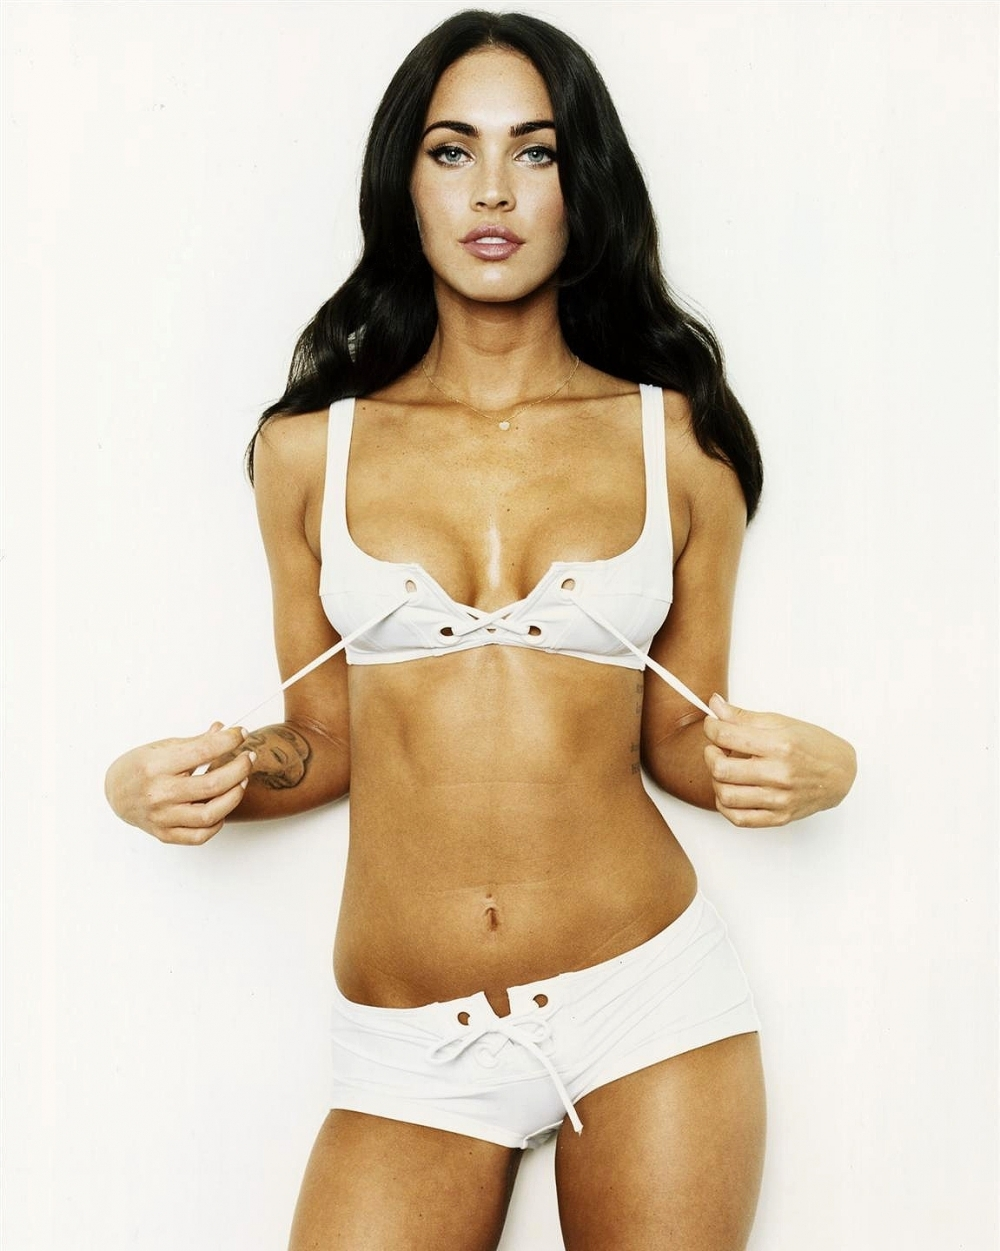 Megan Fox Latest Hot Photo